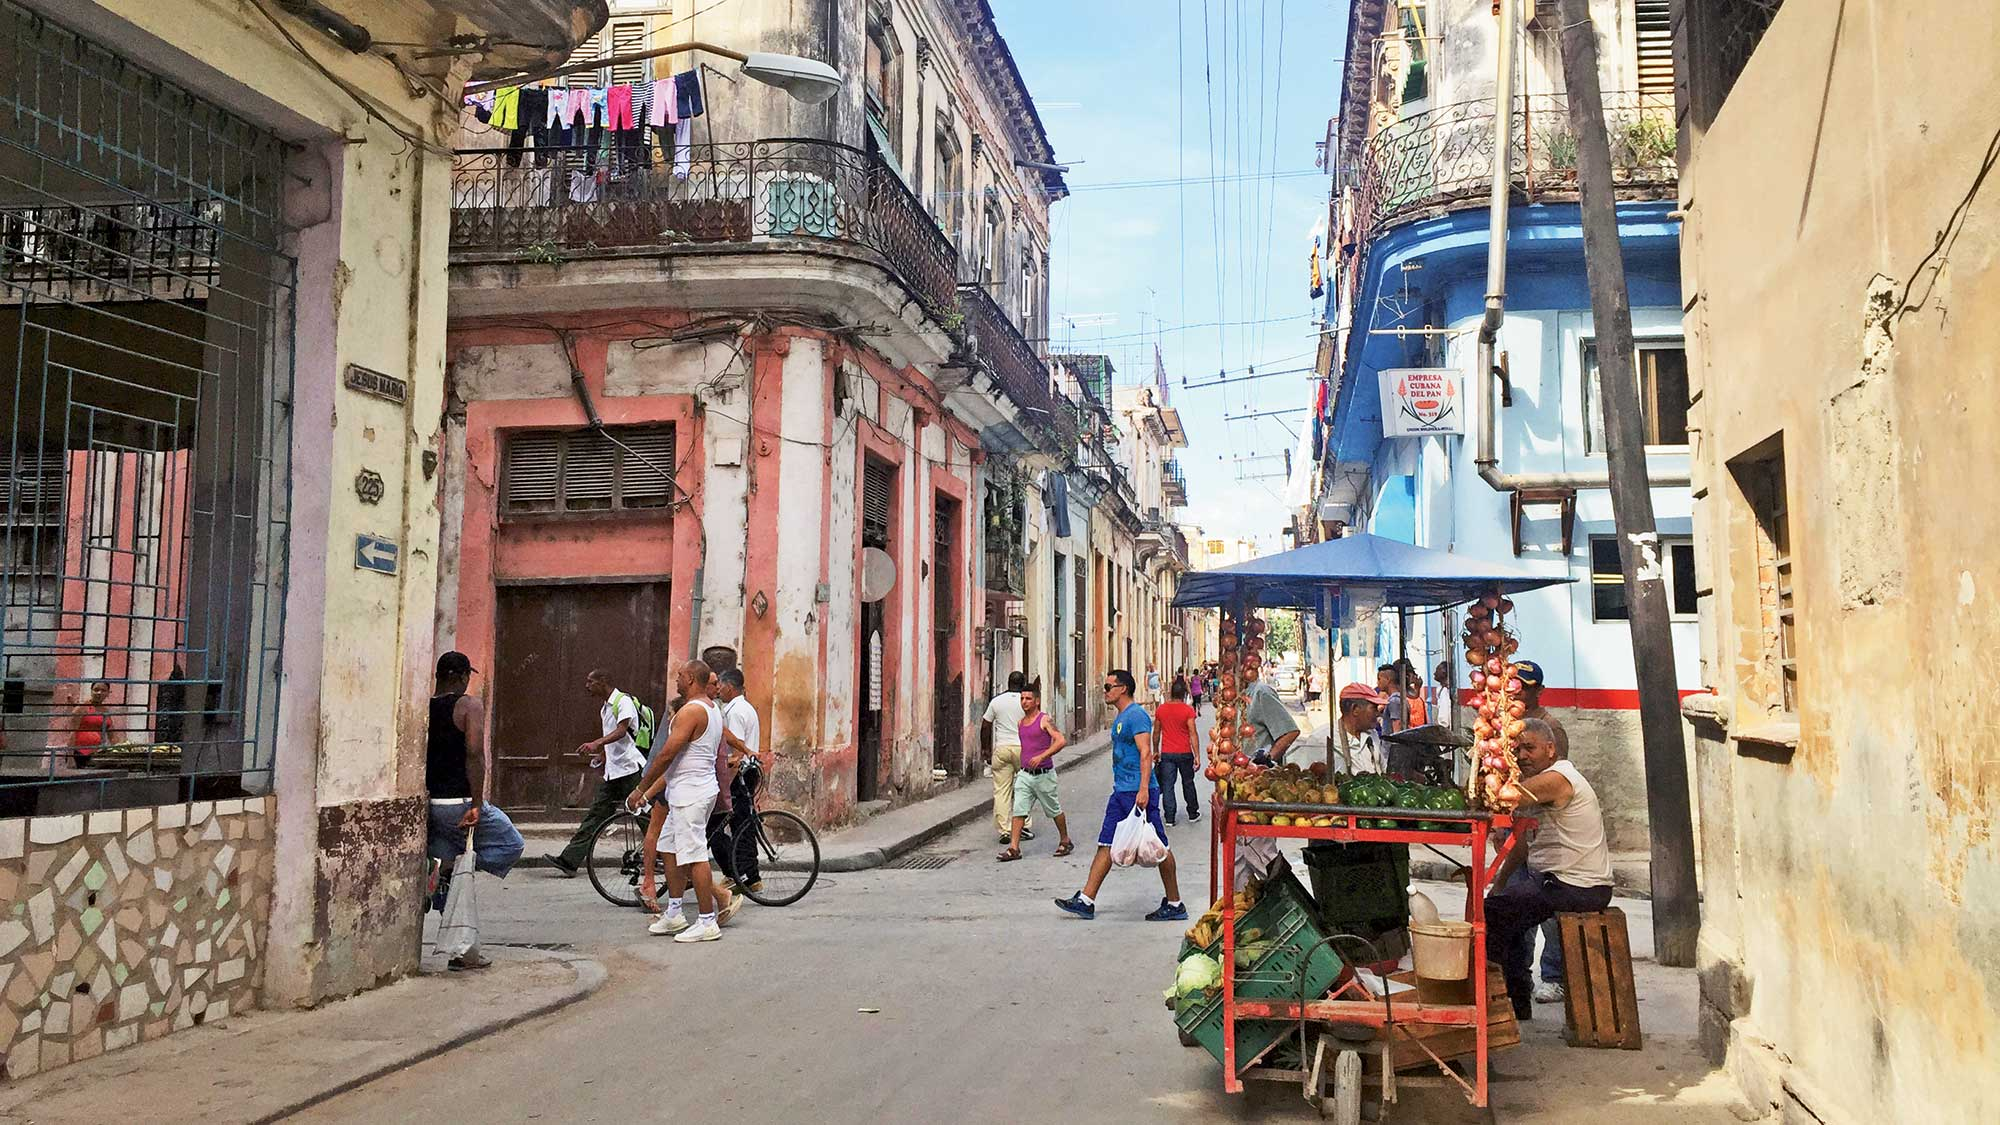 With surge in Cuba interest, tour operators add departures